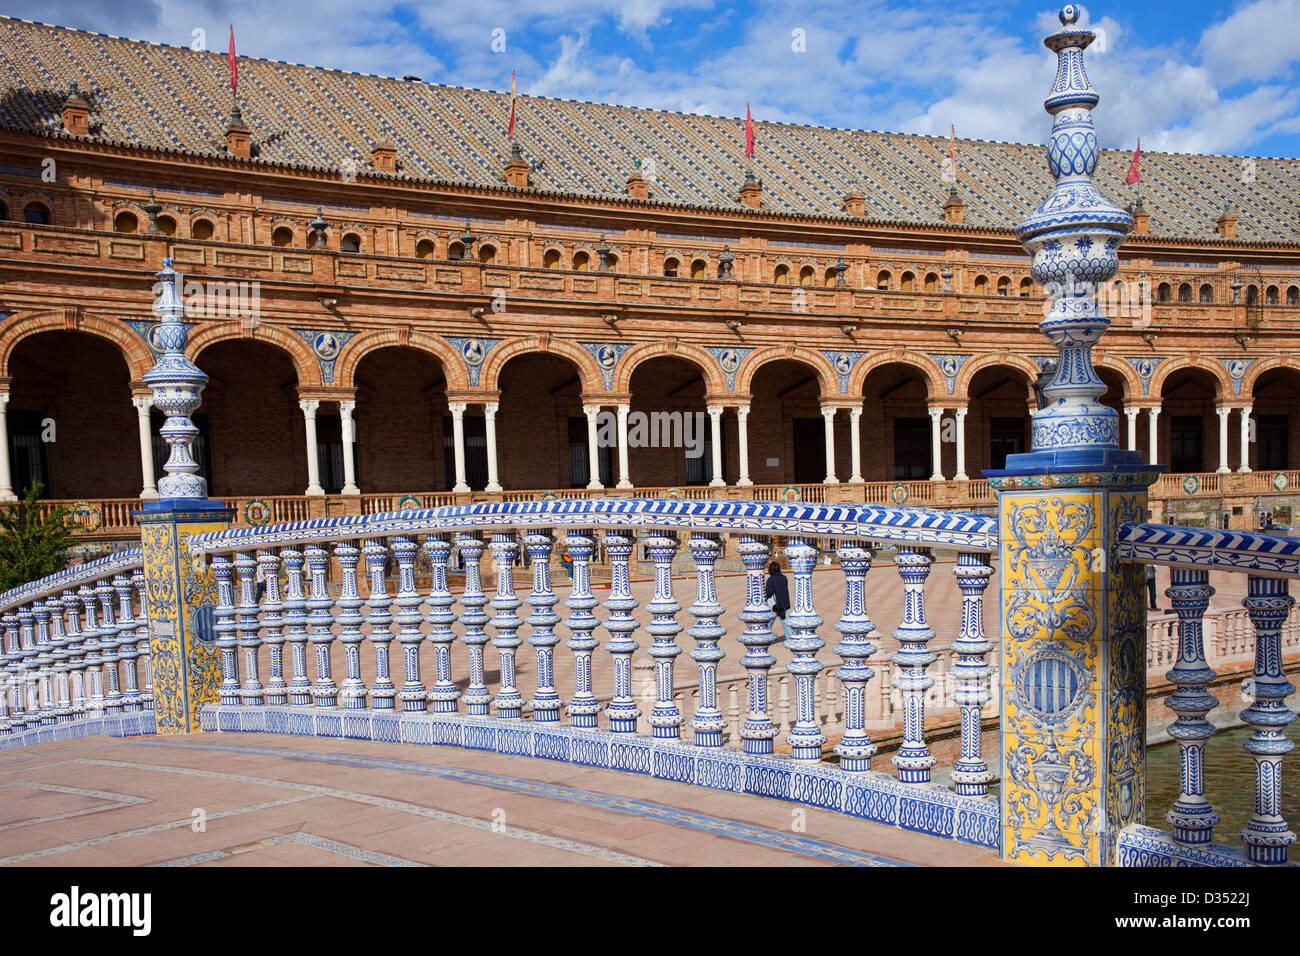 Bridge balustrade decorated with painted Azulejos tiles on Plaza De Espana in Seville, Spain. - Stock Image